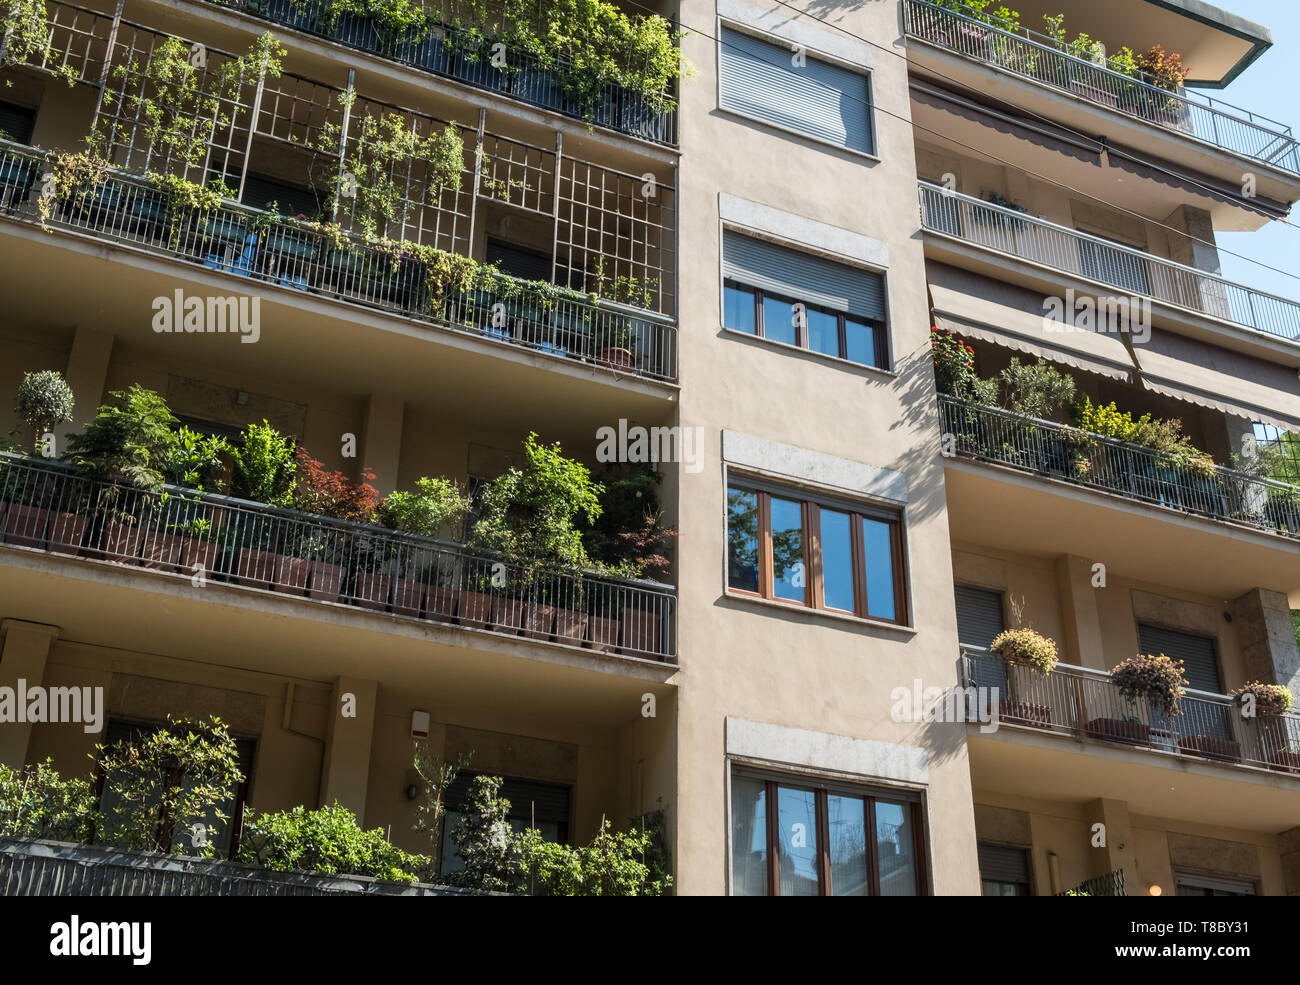 Apartment block building with potted plants growing on garden balconies, Milan, Italy. - Stock Image